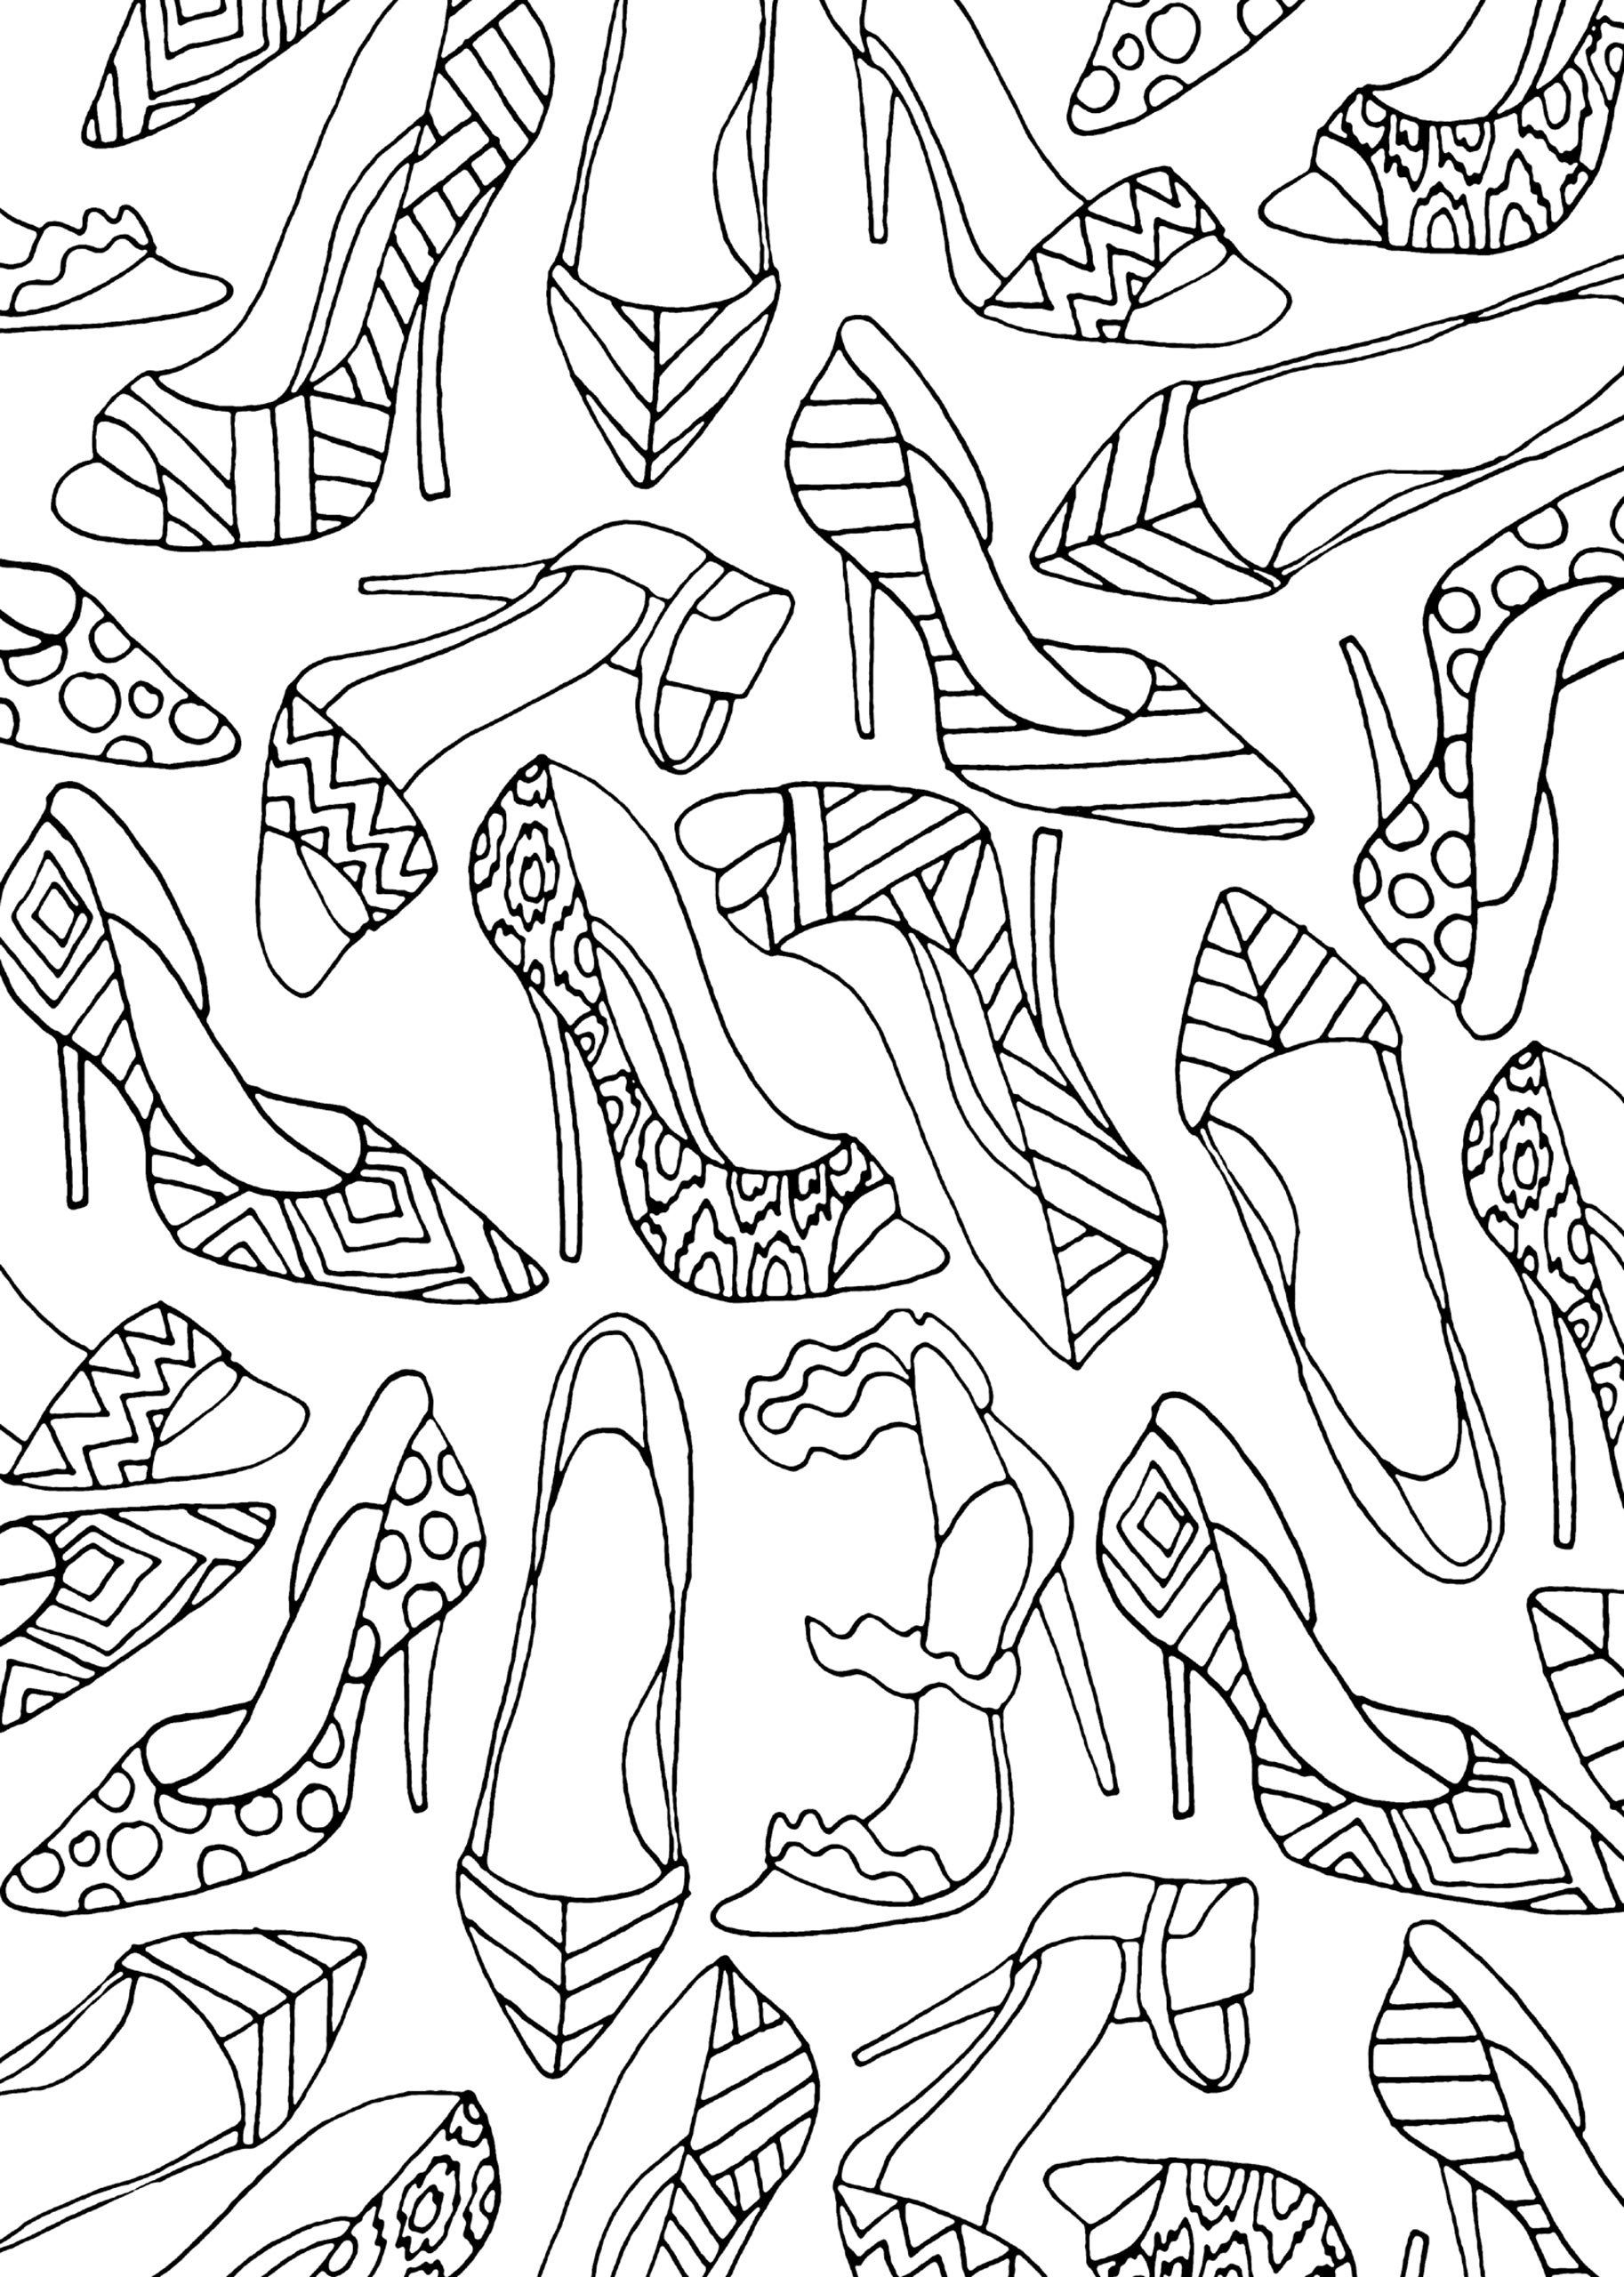 The Portable Adult Coloring Book Fashion Designs (31